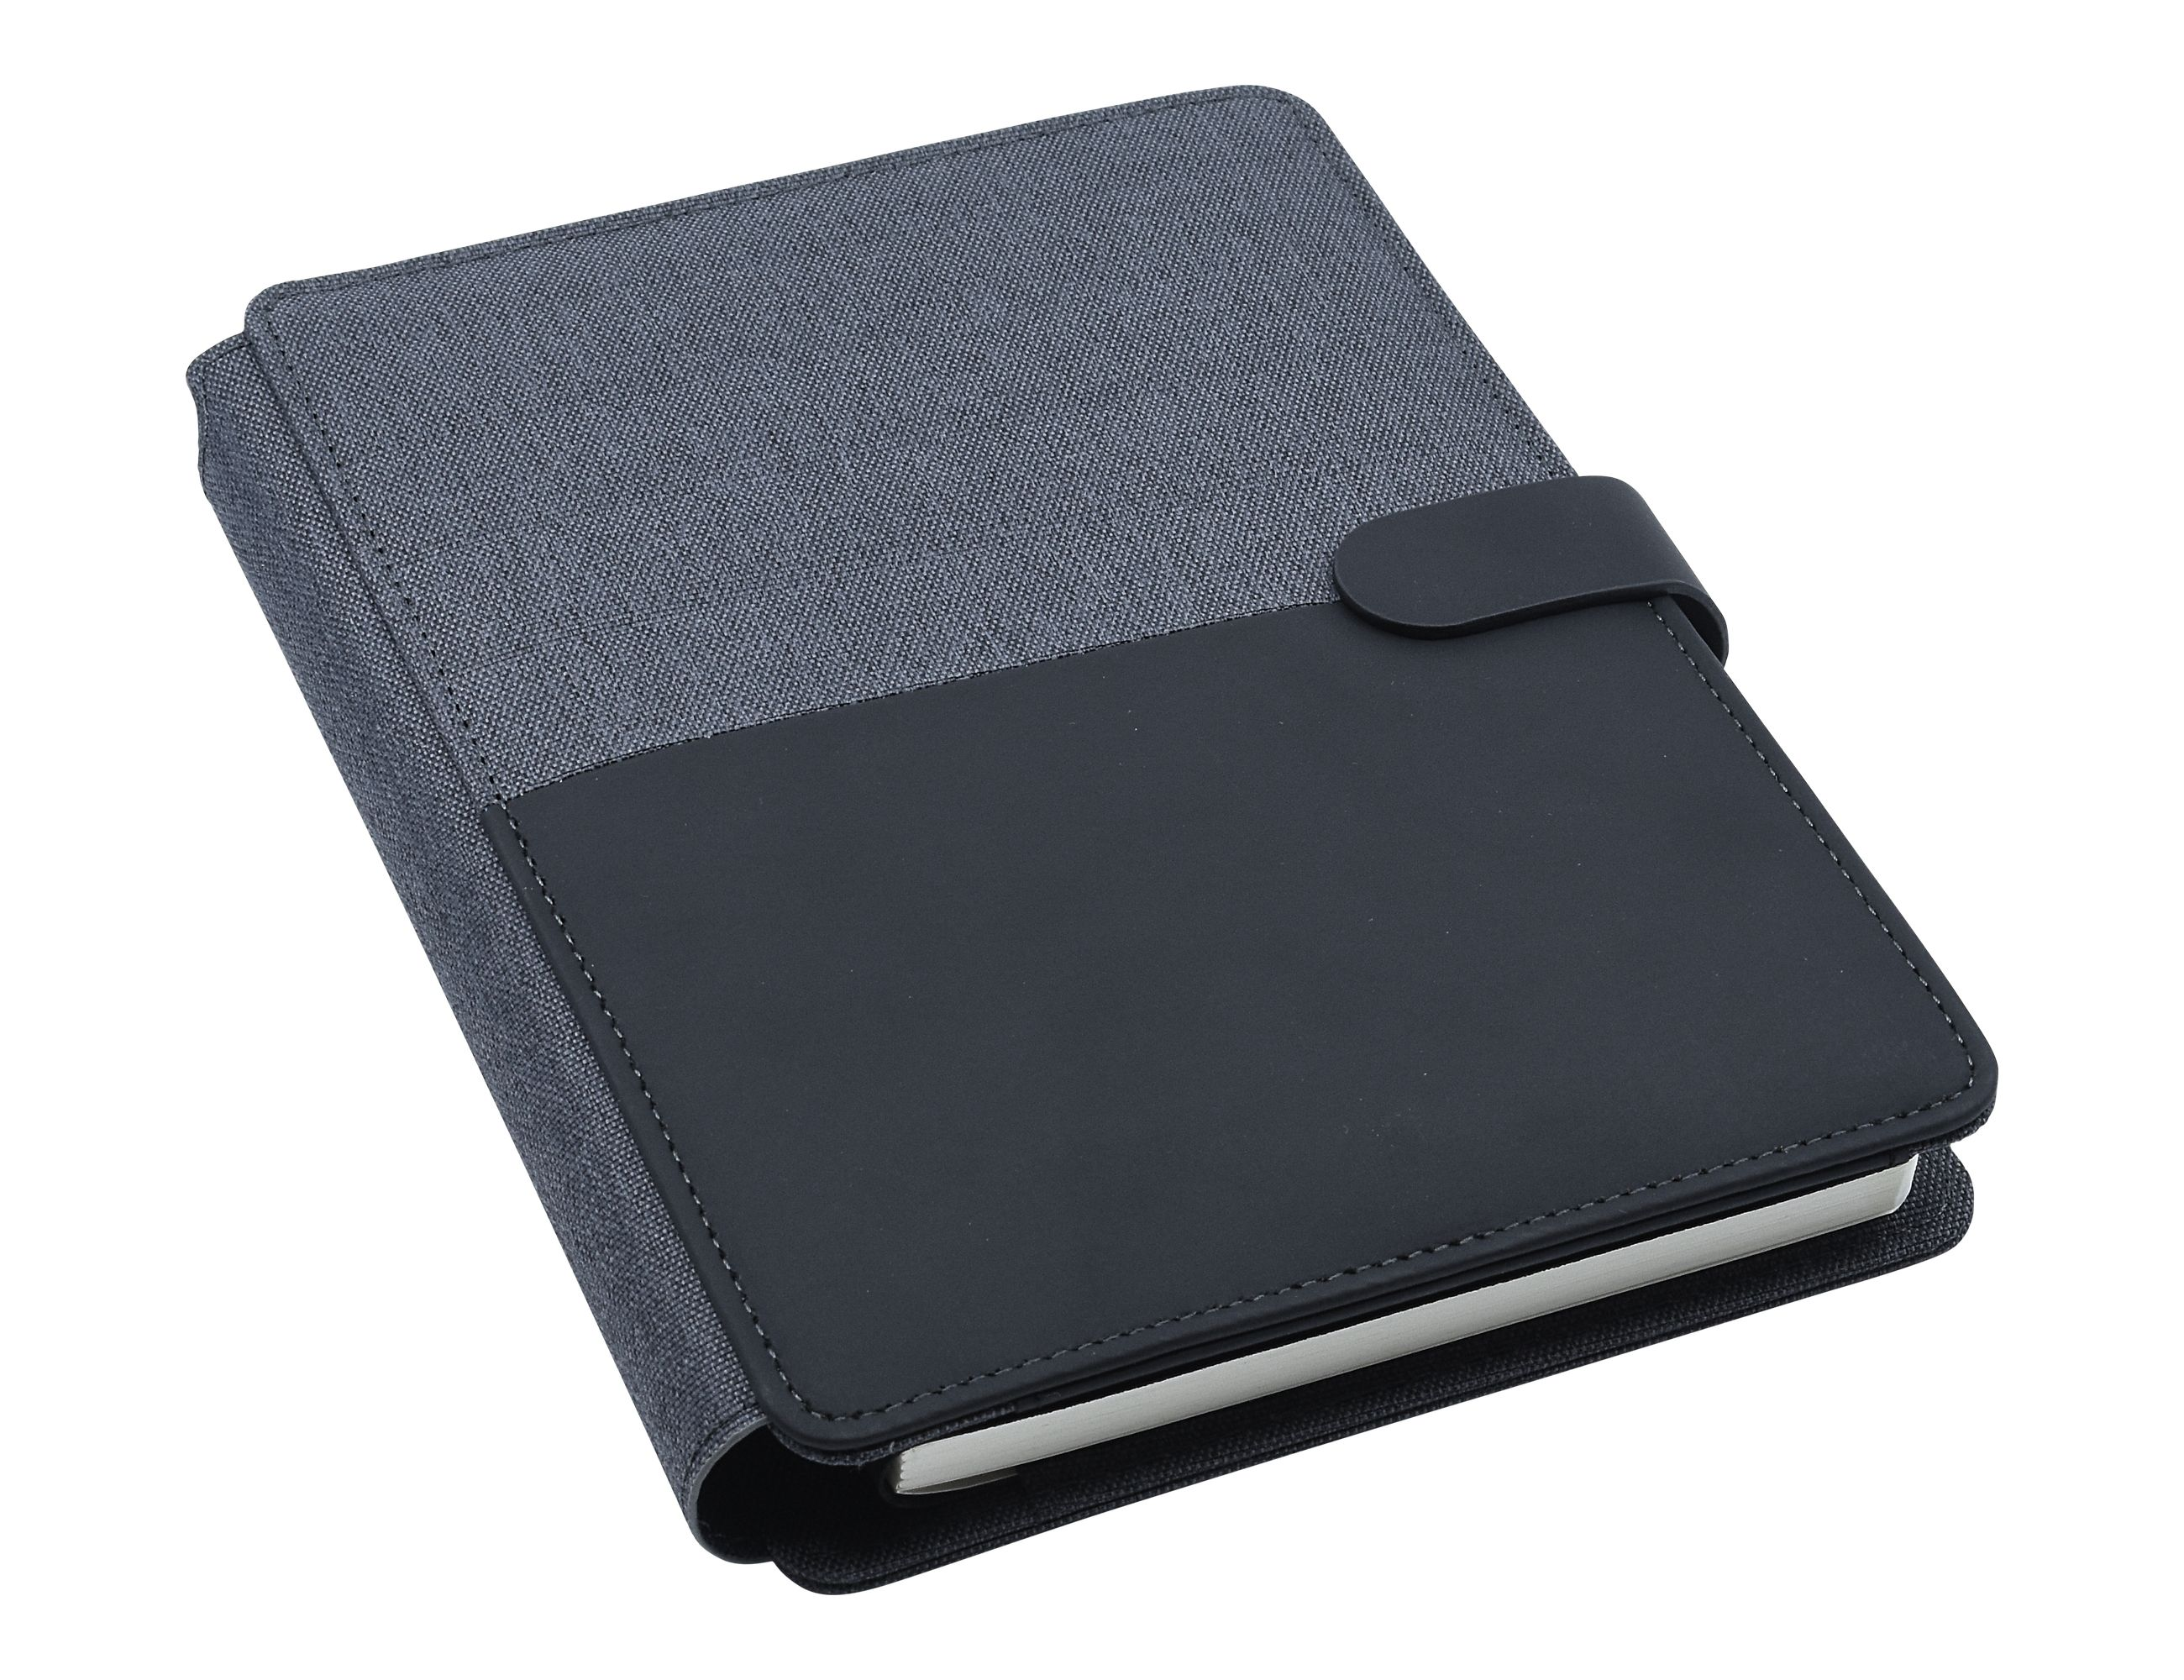 Promotional Product Impact A5 Portfolio, Black/Charcoal